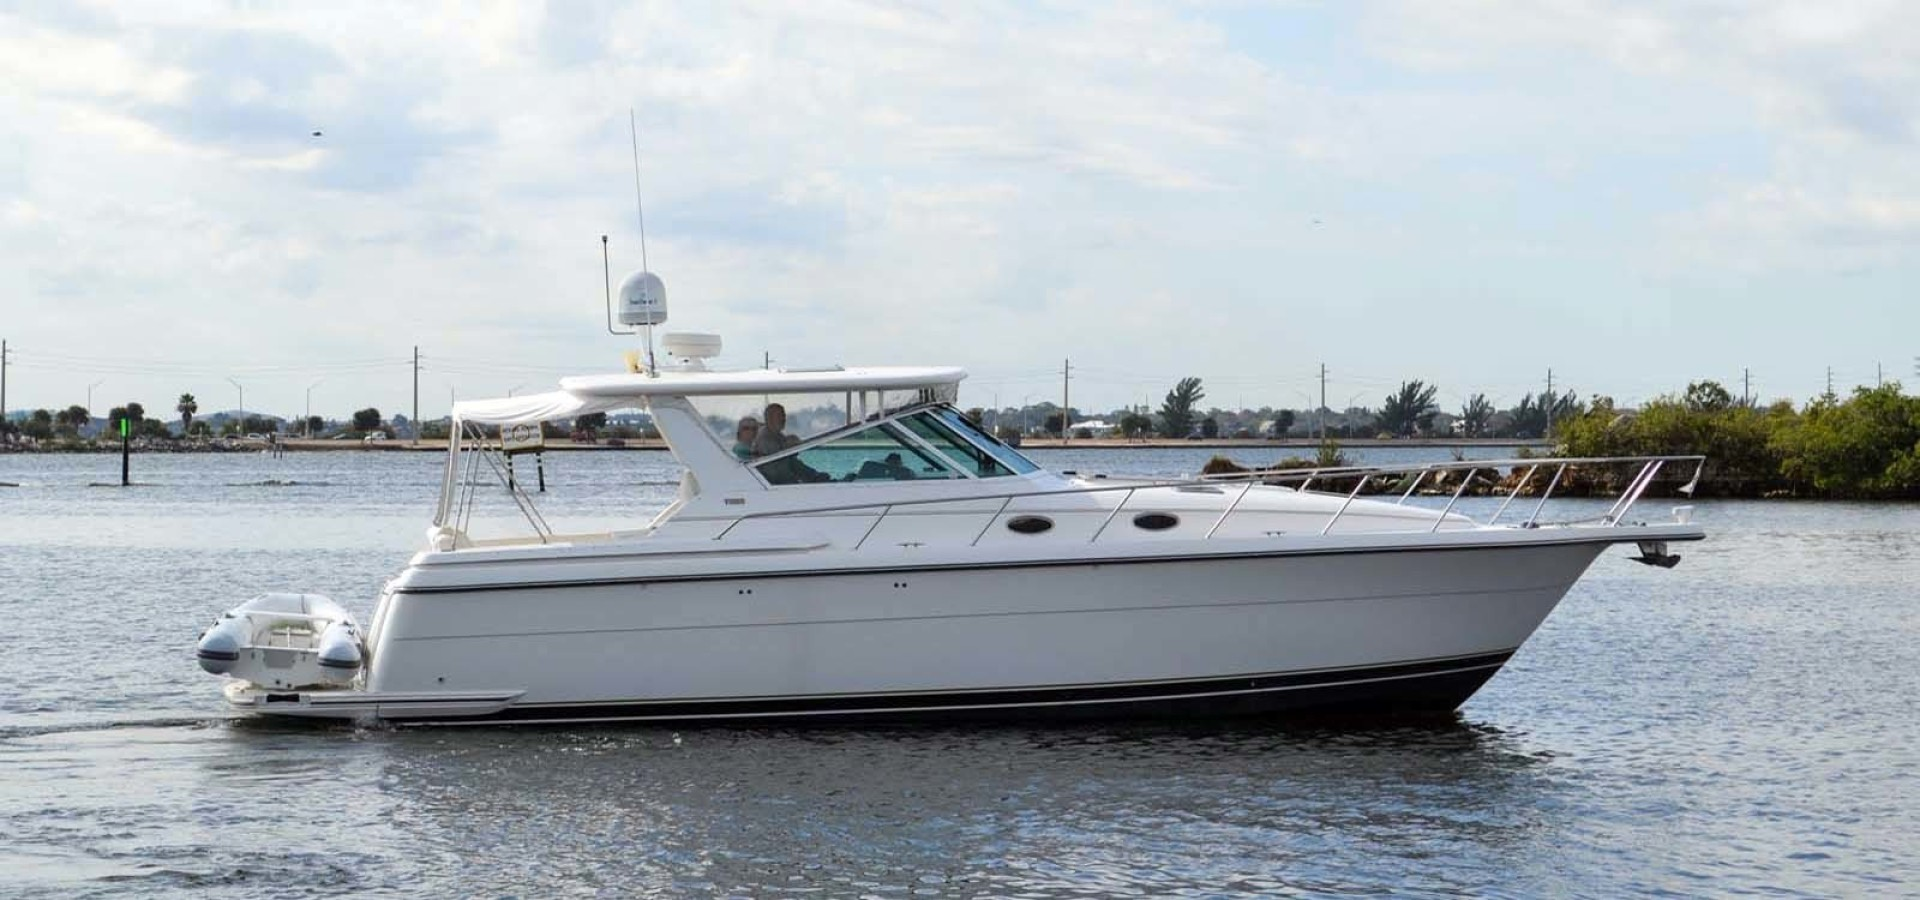 Tiara Yachts-4000 Express 2001-The Lady Barbara Melbourne-Florida-United States-Starboard-1315241 | Thumbnail